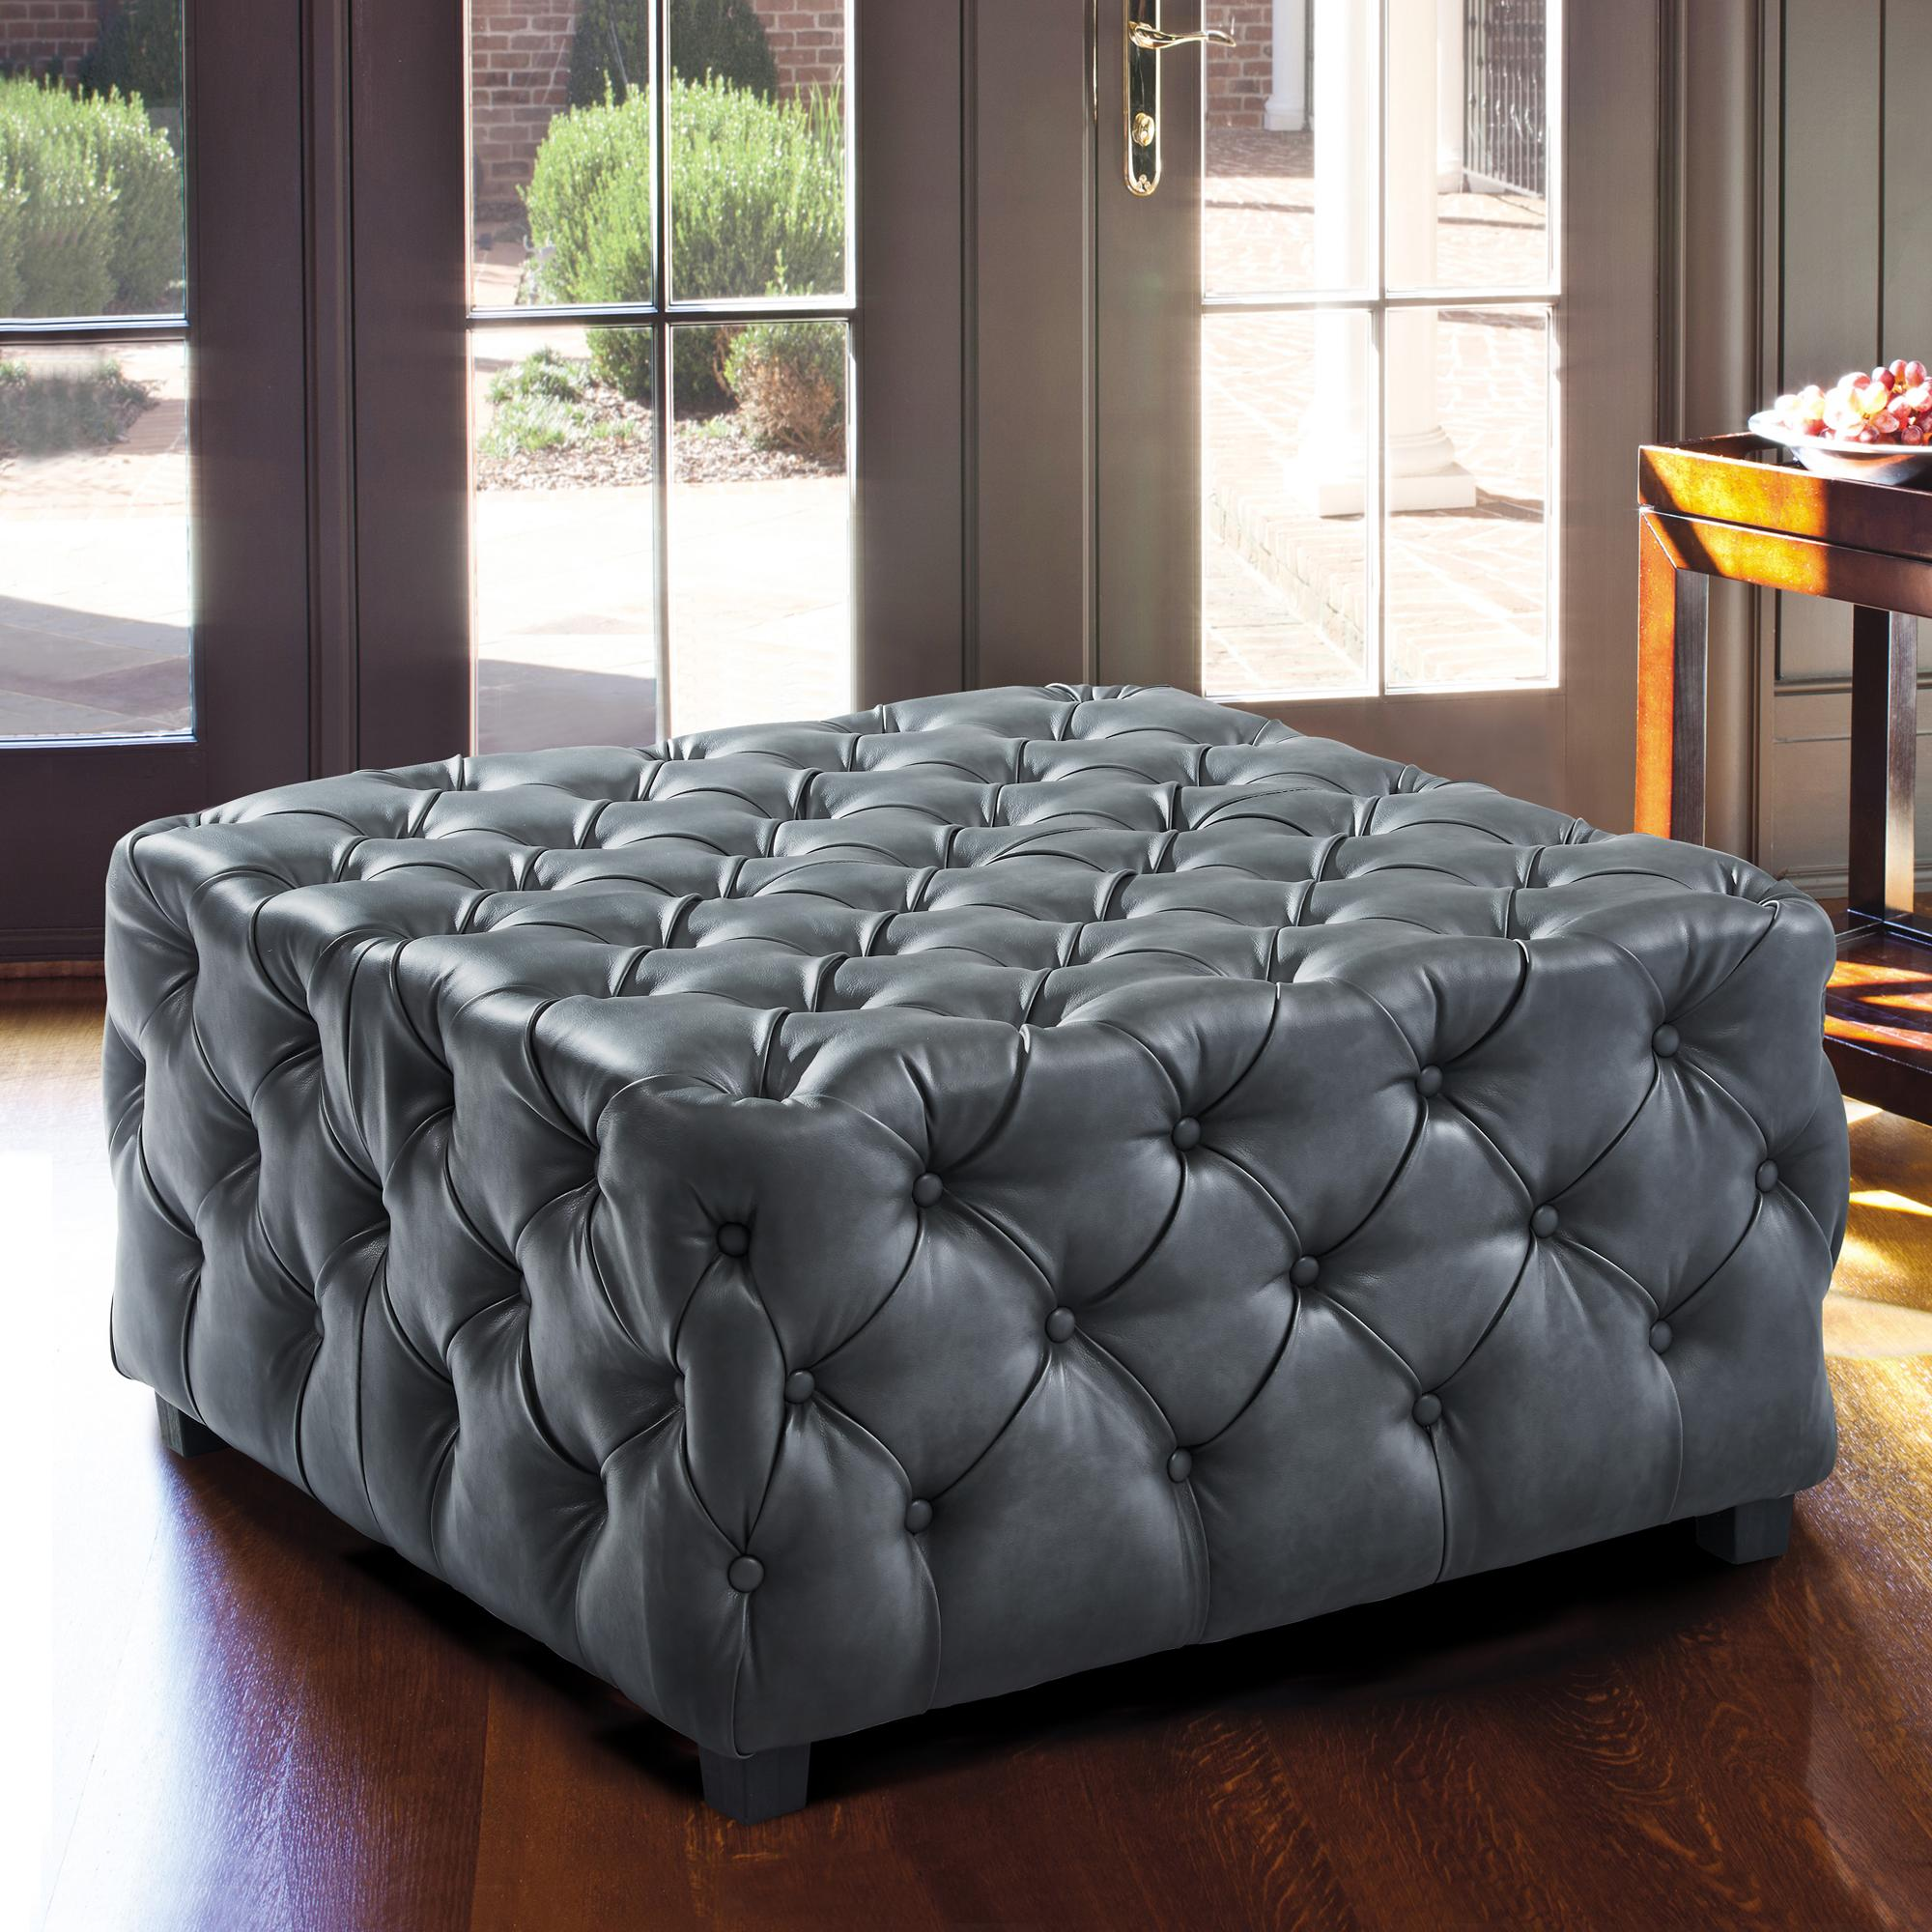 Armen Living Taurus Contemporary Ottoman in Grey Faux Leather with Wood Legs